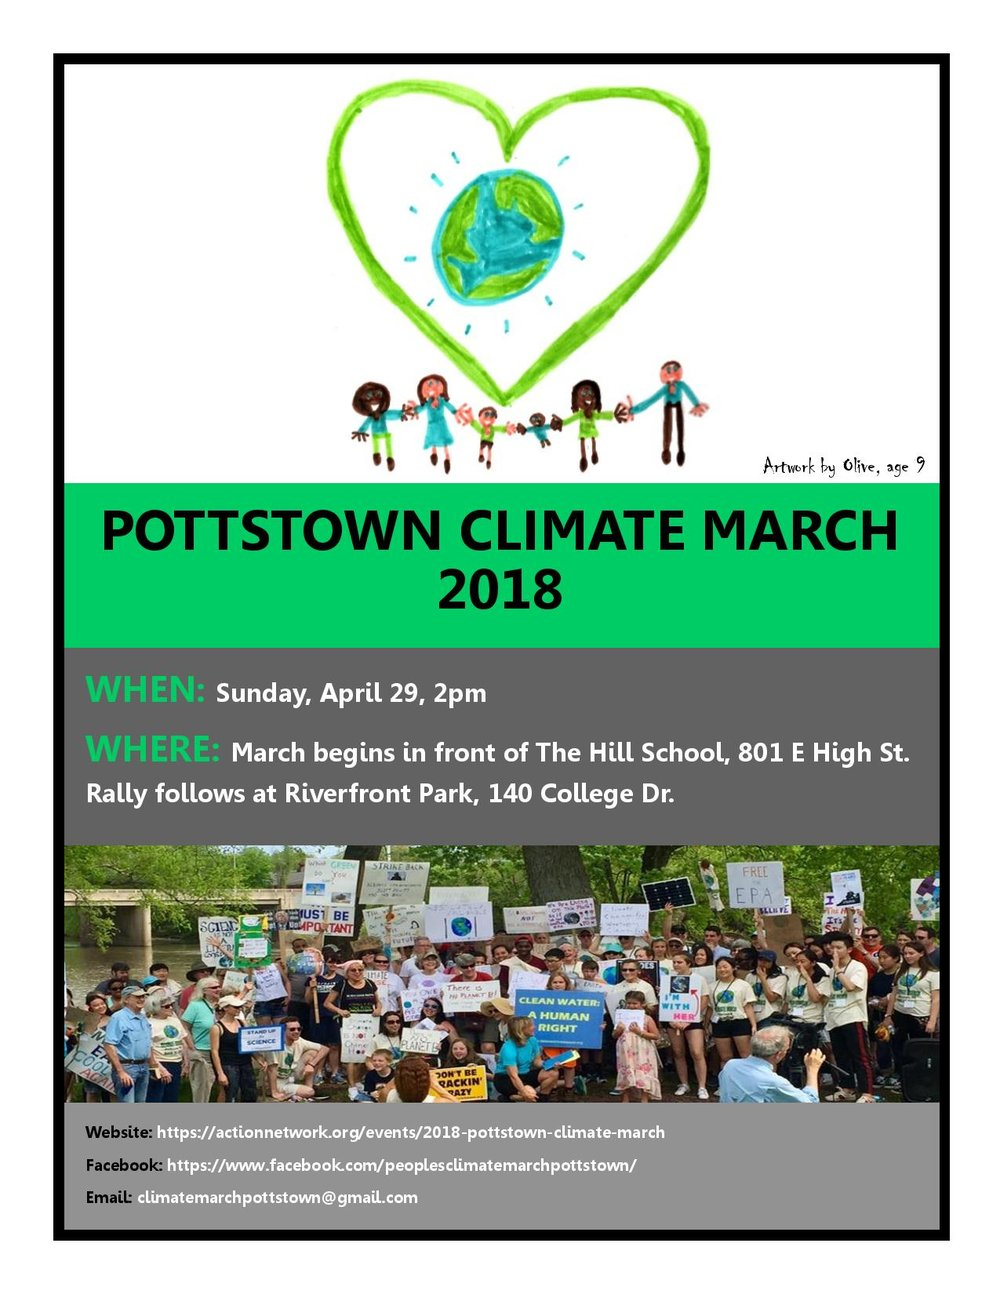 PottstownClimateMarch2018 flyer (1)-page-001.jpg